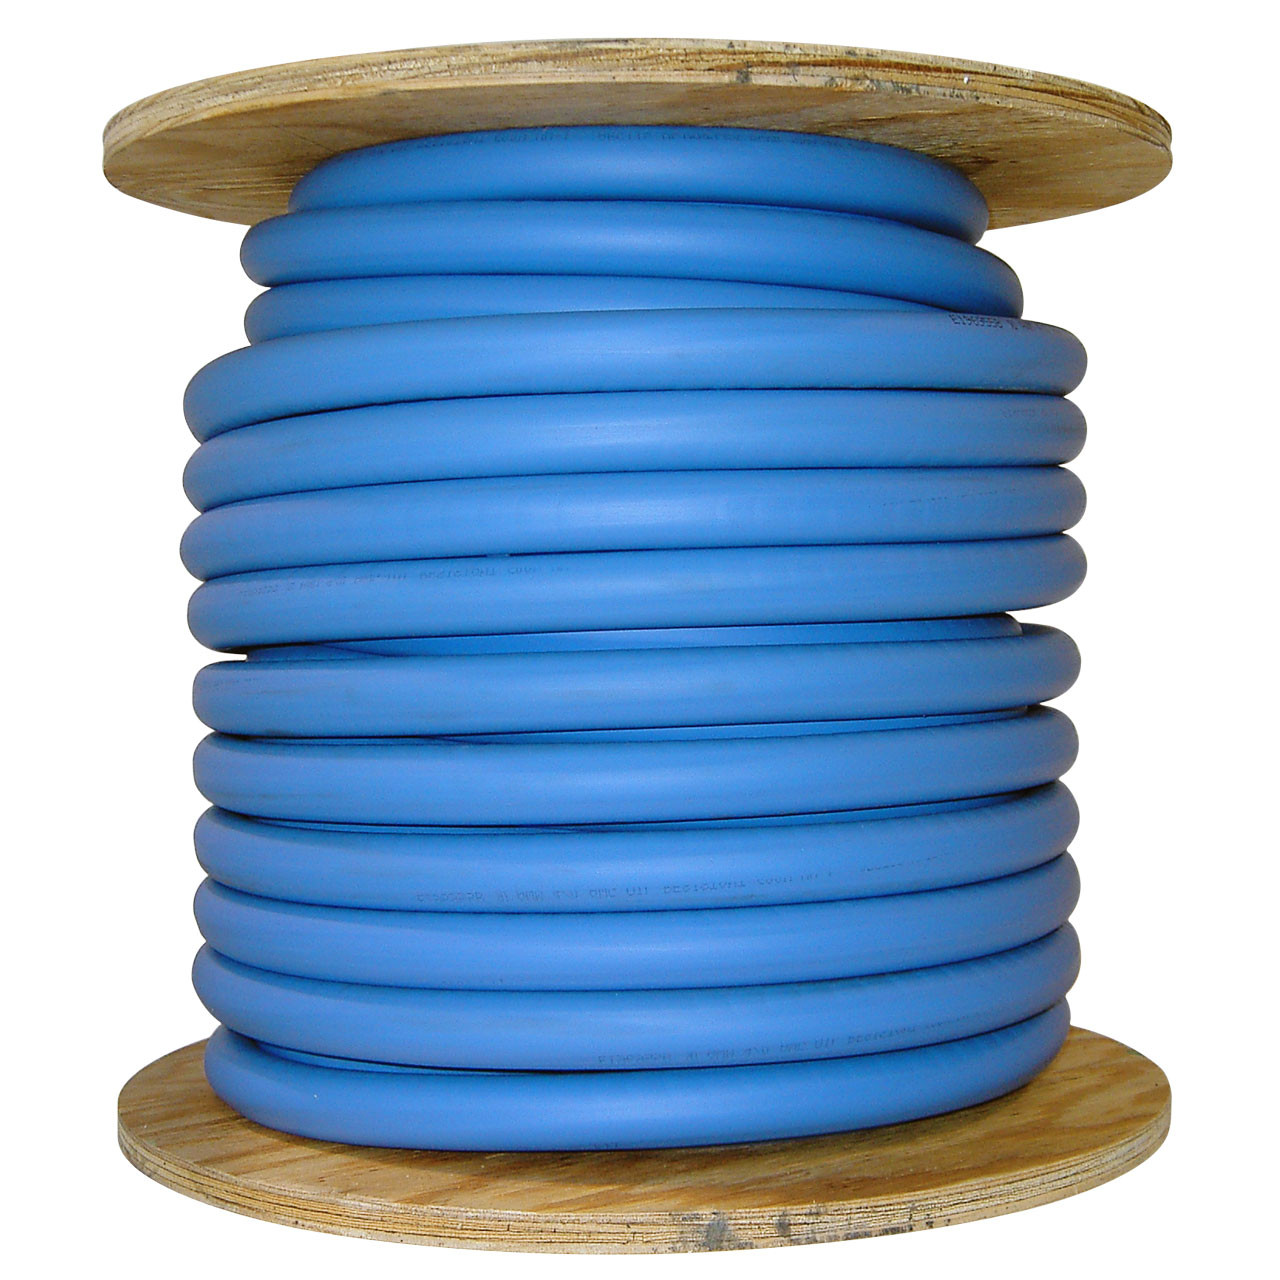 ARCTIC ULTRAFLEX 4/0 BLUE 100 FOOT ROLL